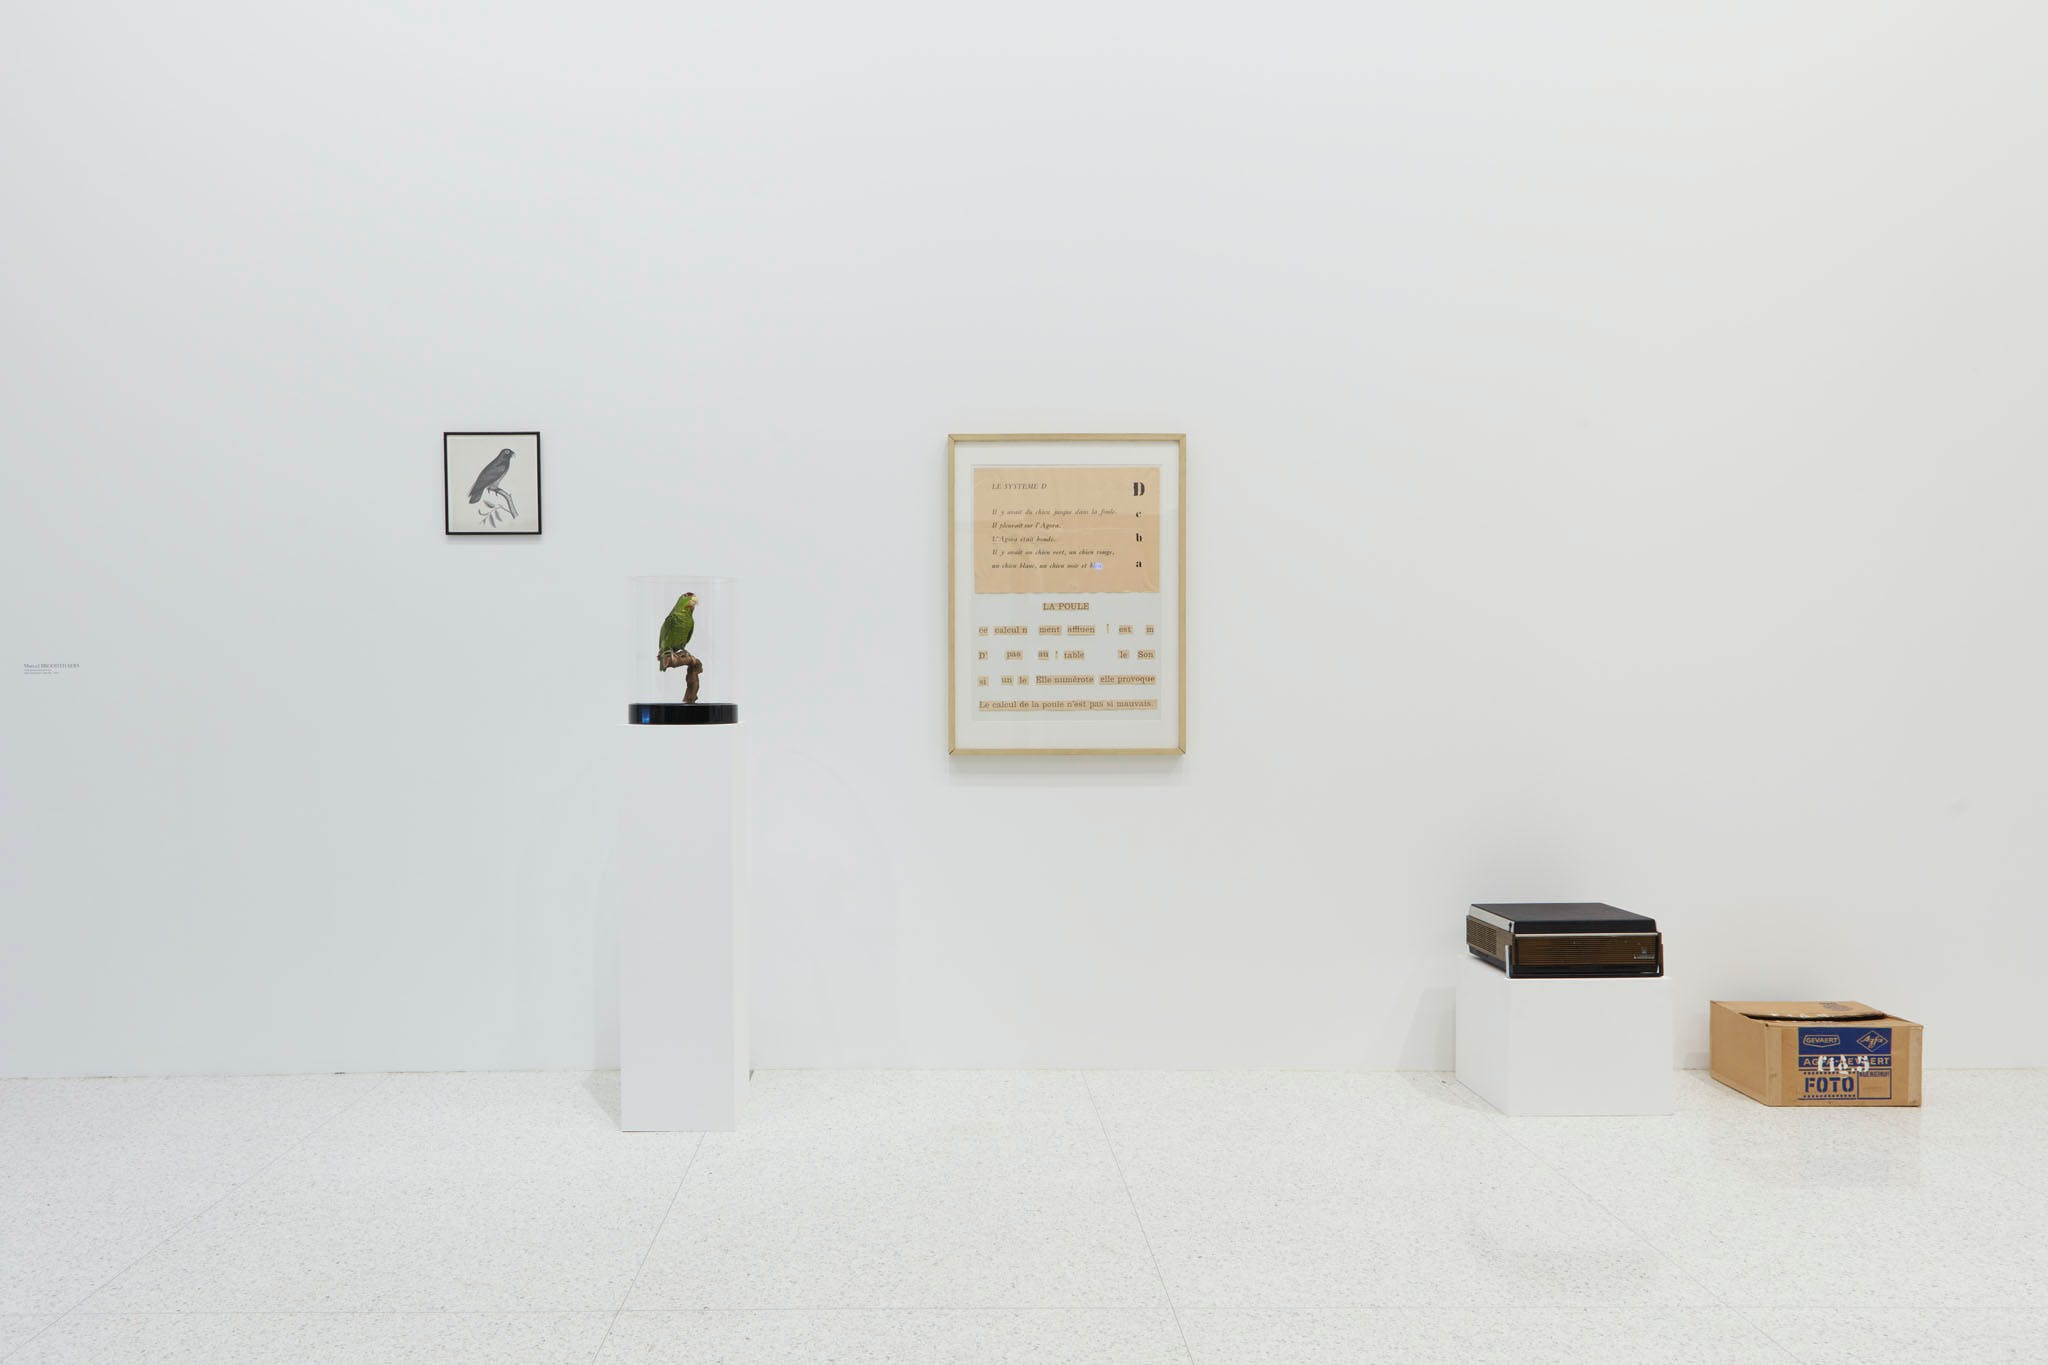 View of the exhibition Question the Wall Itself, 2016; Marcel Broodthaers, Dites partout que je l'ai dit (Say Everywhere I Said So), 1974 (Photo: Gene Pittman, ©Walker Art Center)